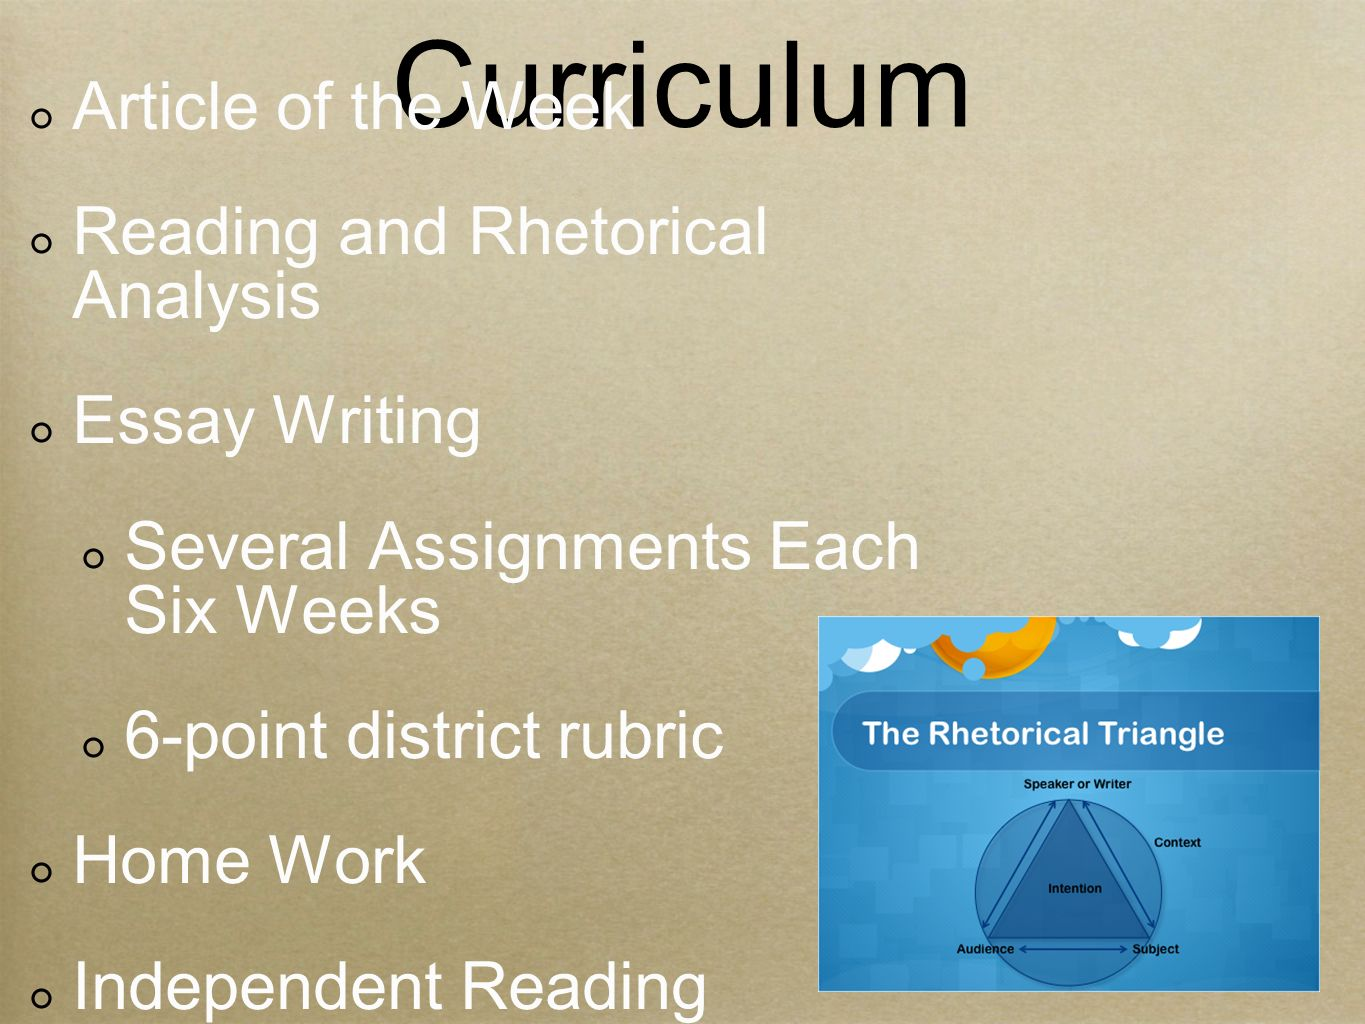 Curriculum Article of the Week Reading and Rhetorical Analysis Essay Writing Several Assignments Each Six Weeks 6-point district rubric Home Work Independent Reading